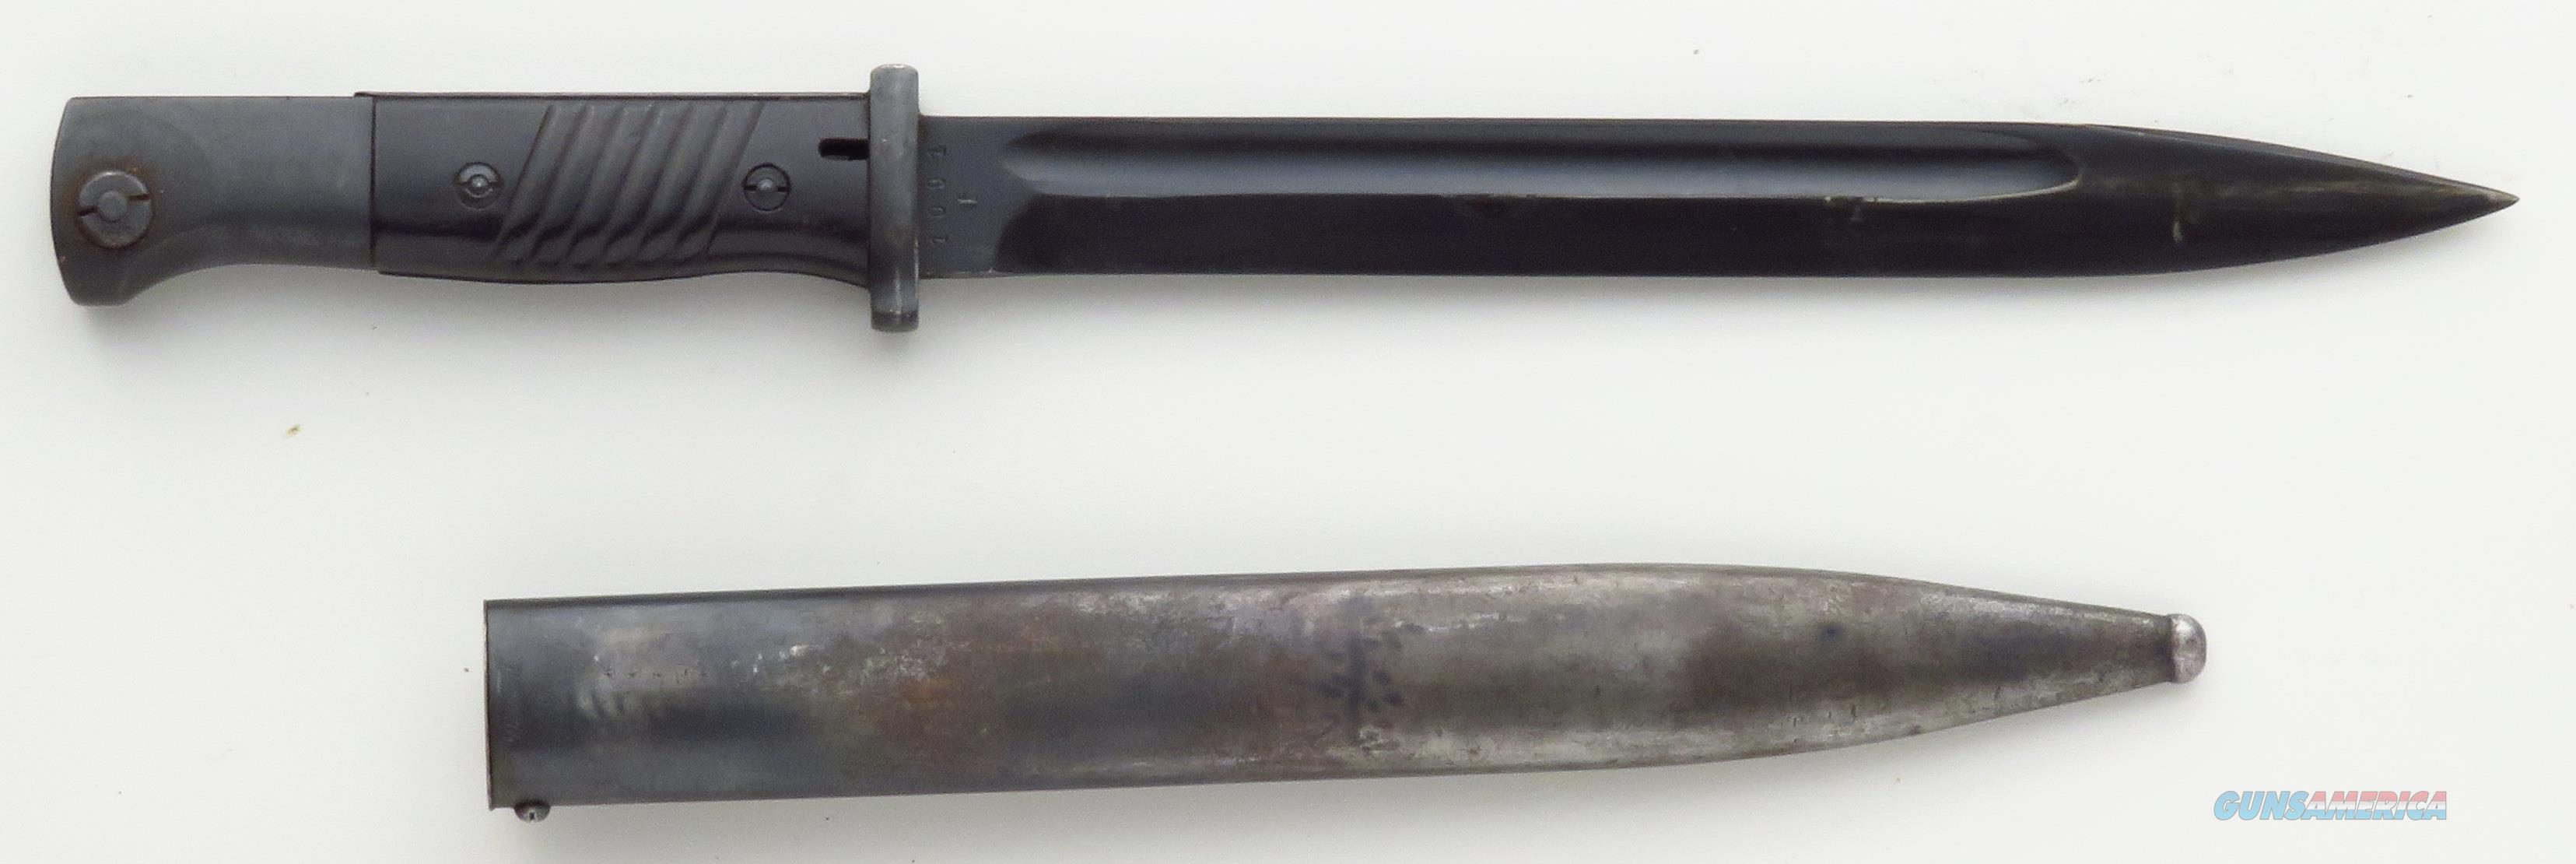 German 1884/98 bayonet, crs/40 (Weyersberg)  Non-Guns > Knives/Swords > Military > Bayonets